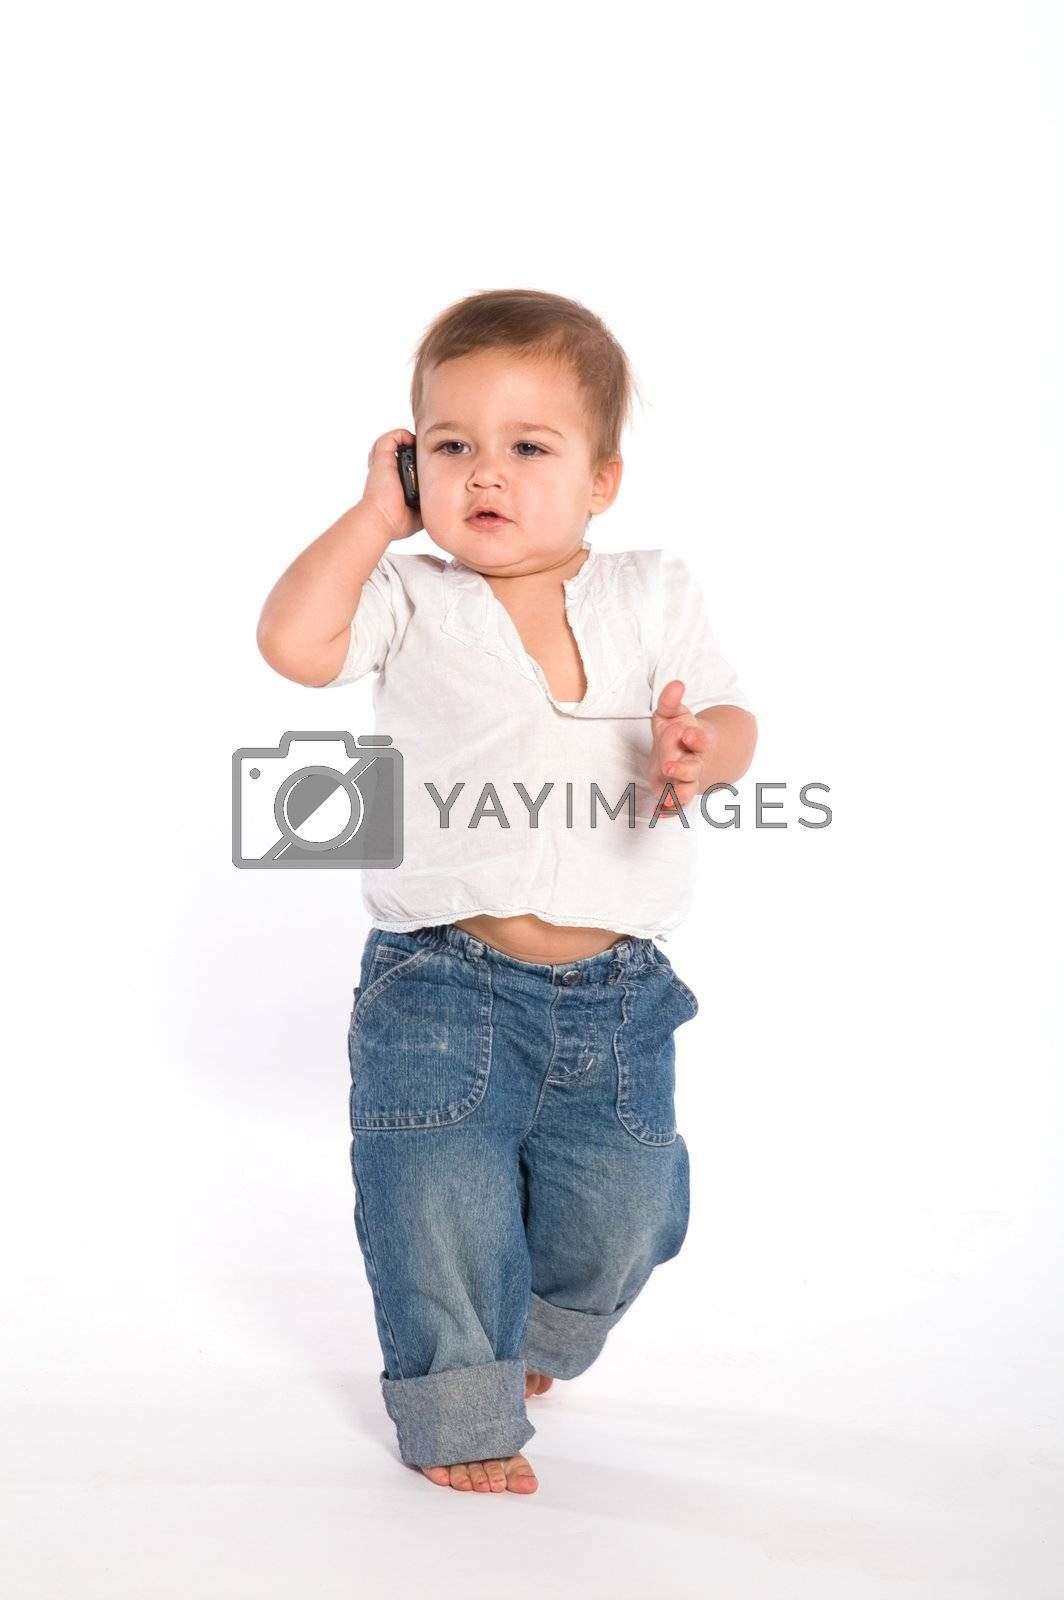 1 year baby walking and speaking by the phone